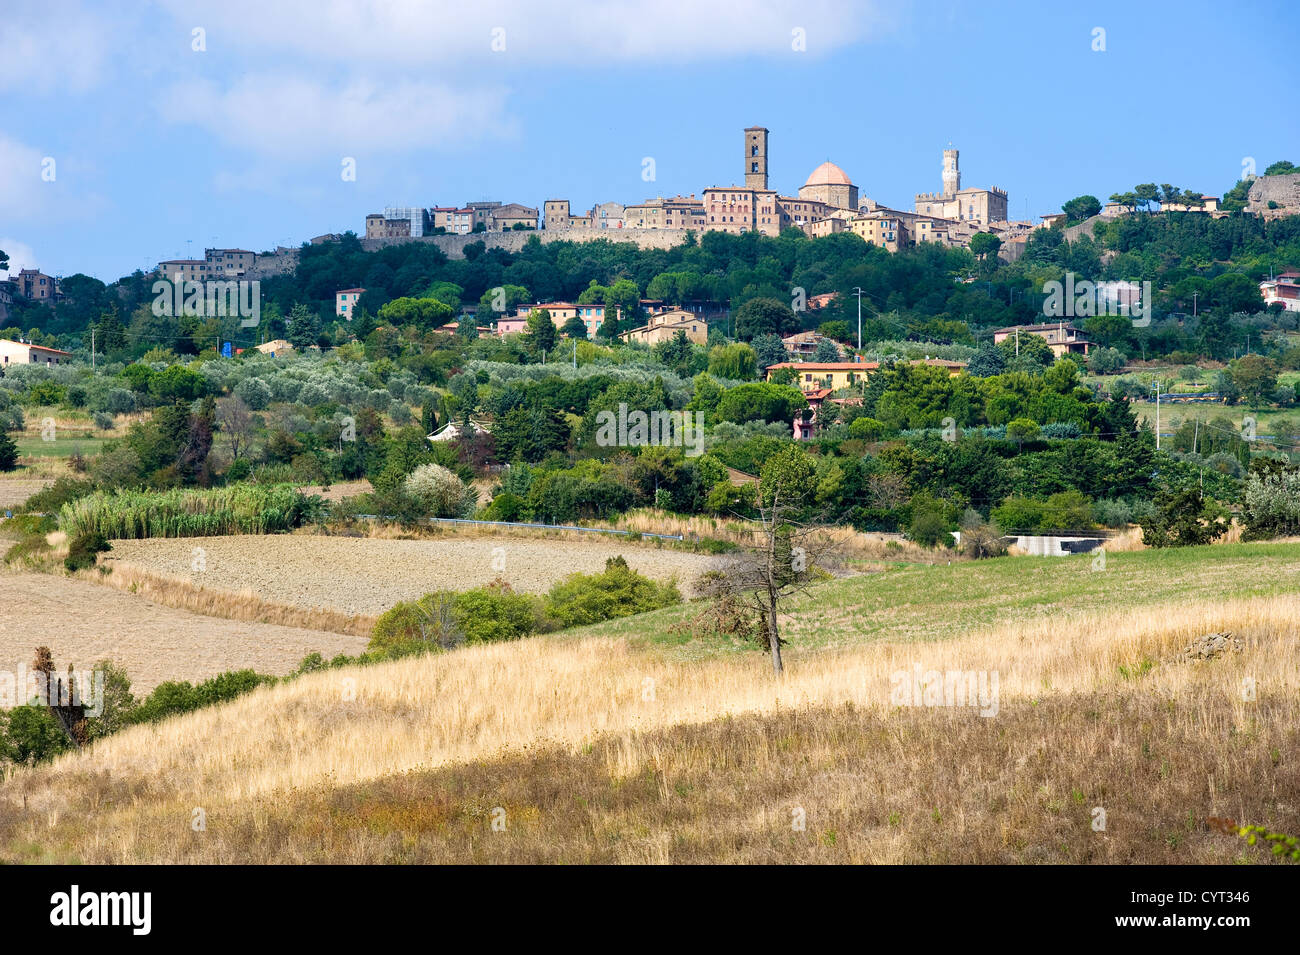 The city of Volterra in the landscape of Tuscany in Italy. - Stock Image